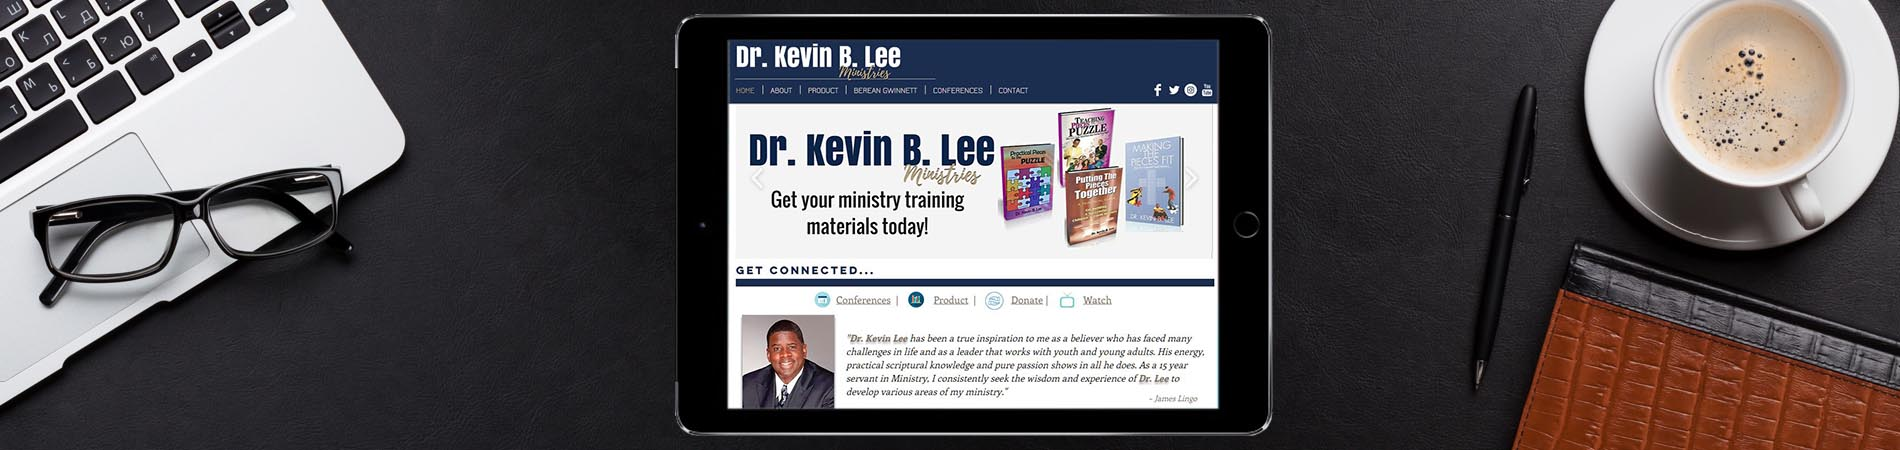 Dr. Kevin B. Lee - KBL Website